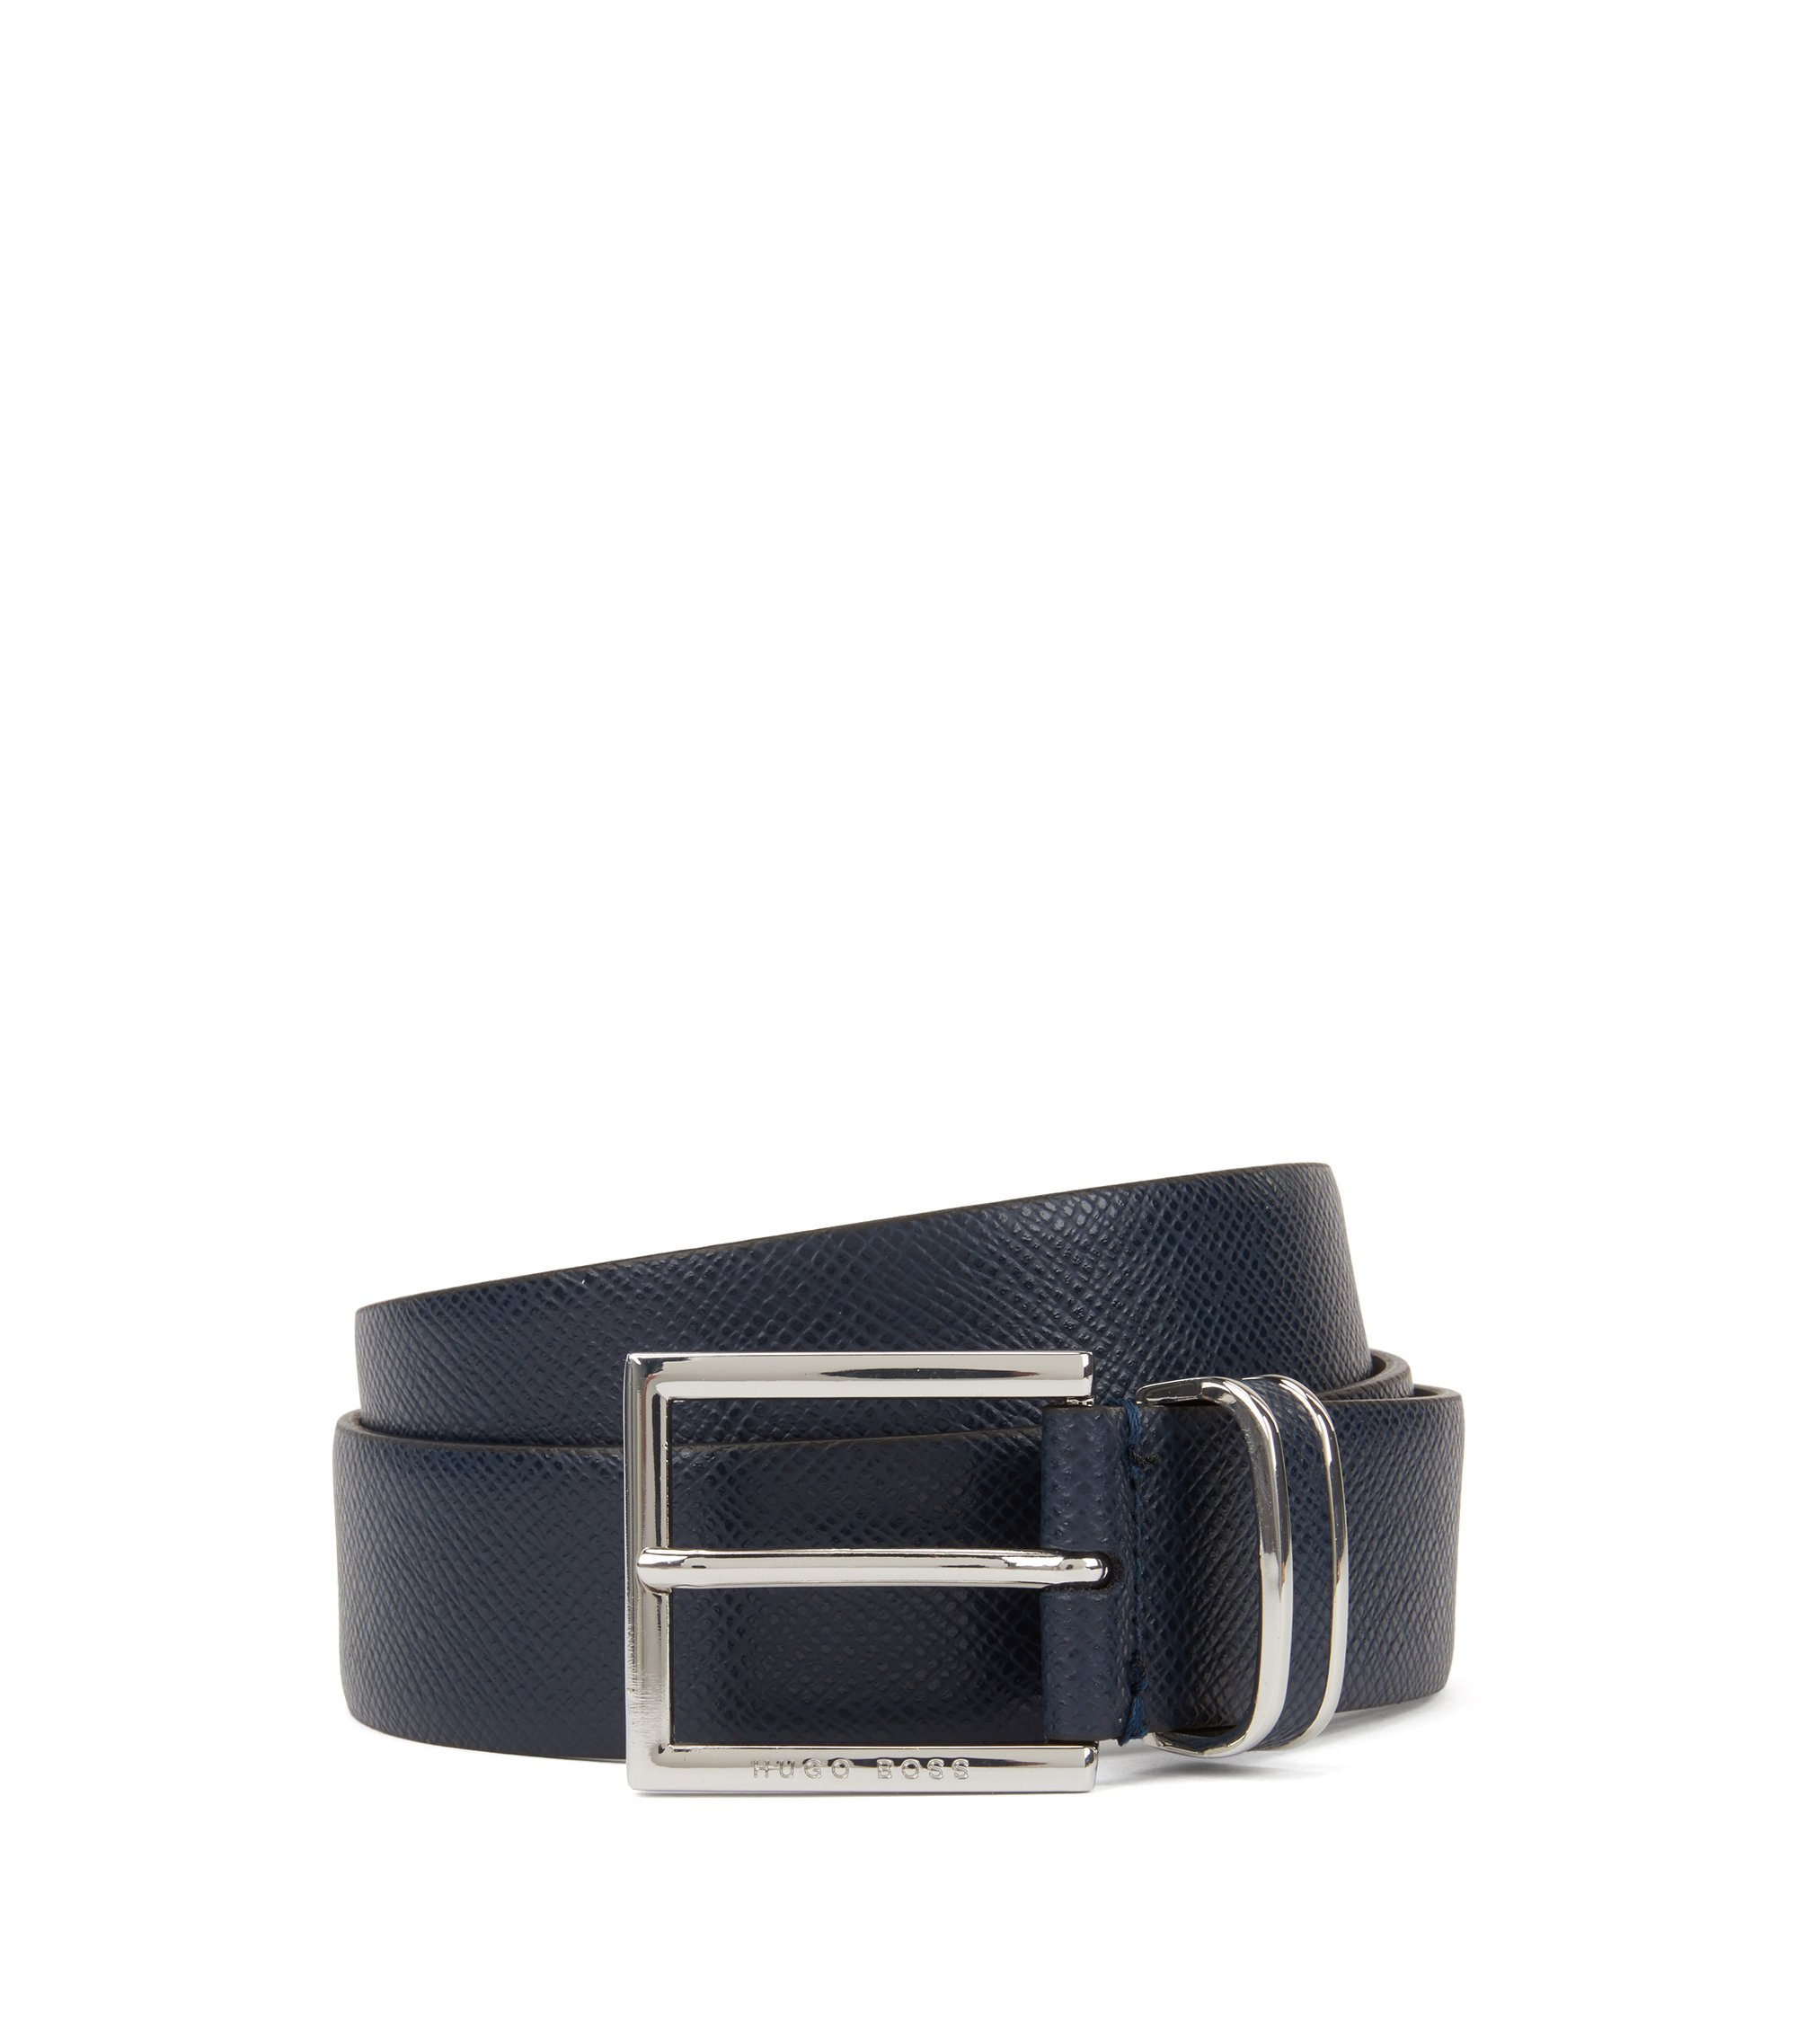 Signature Collection belt in embossed calf leather, Dark Blue